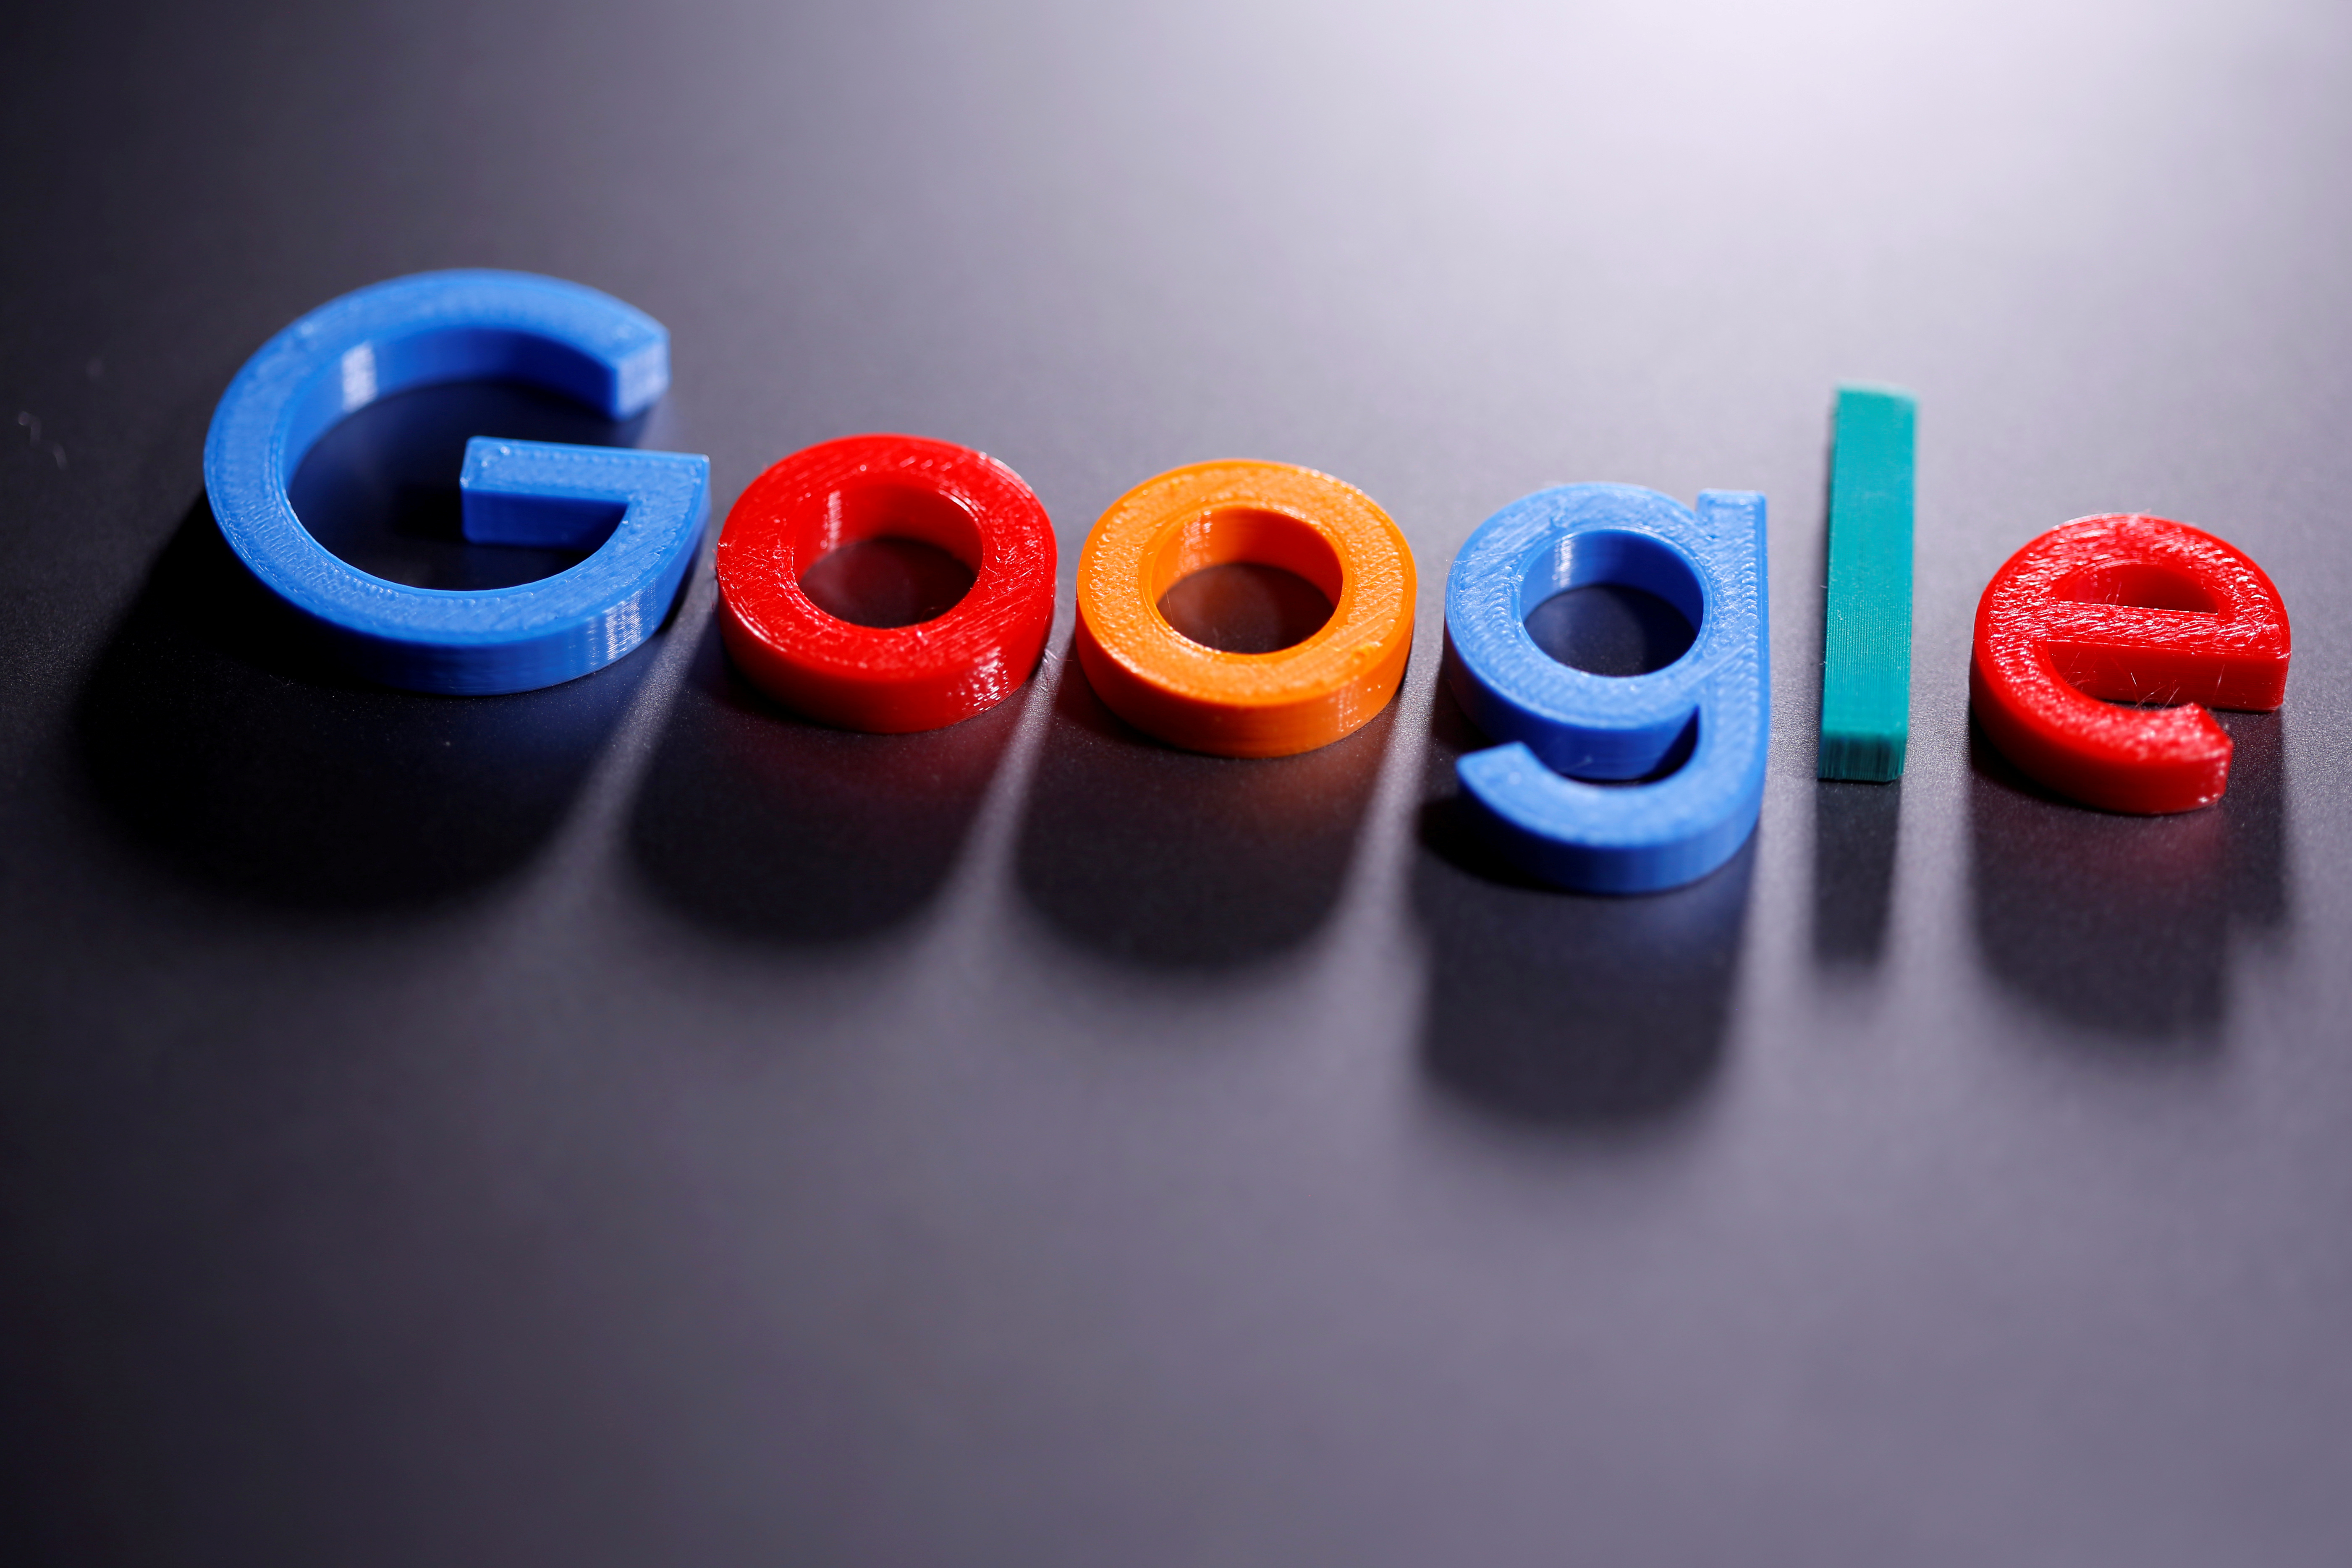 A 3D printed Google logo is seen in this illustration taken April 12, 2020. REUTERS/Dado Ruvic/Illustration/File Photo